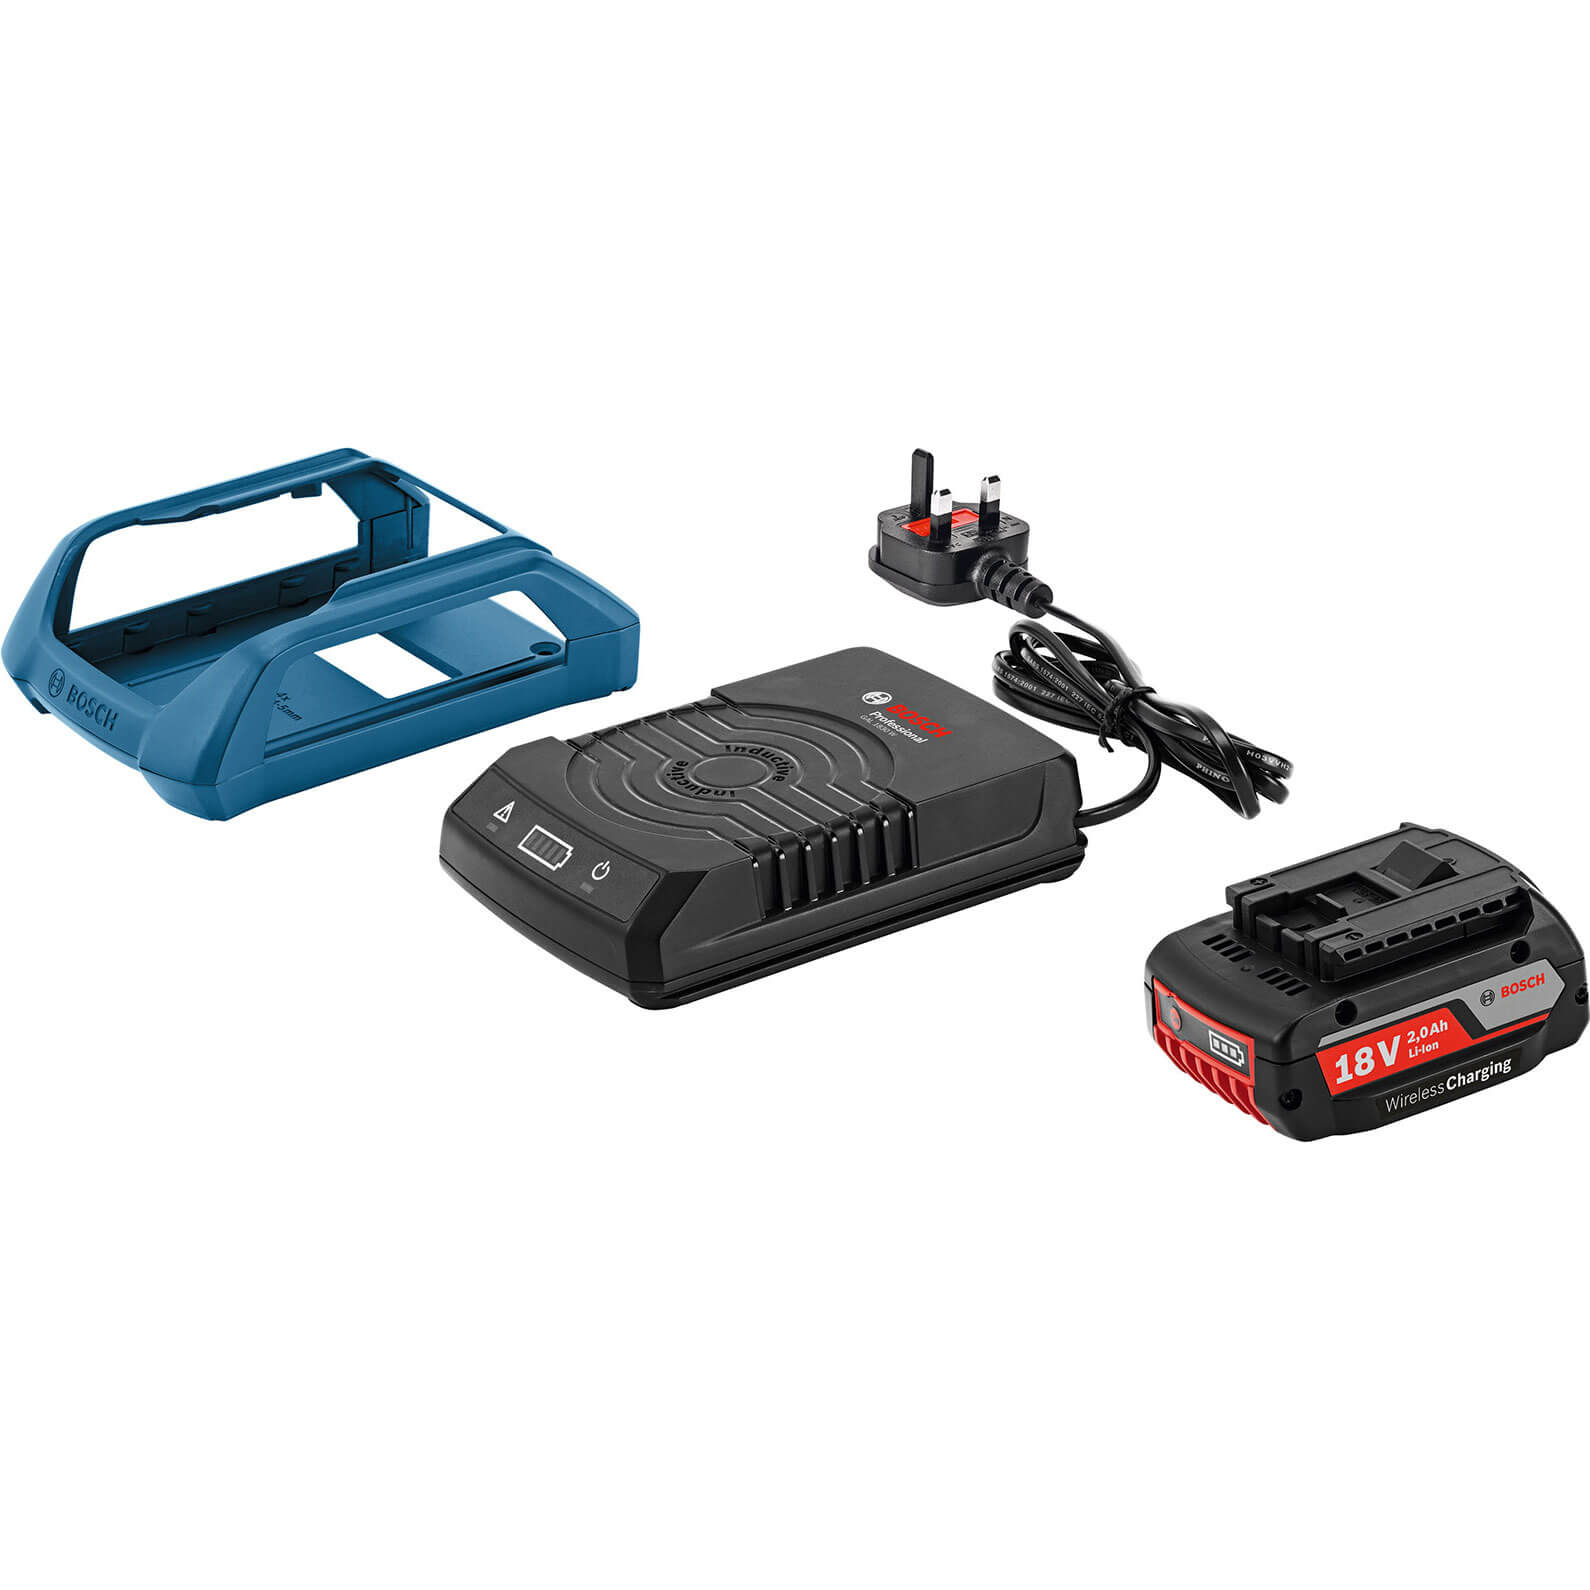 Image of Bosch GAL 1830 18v Cordless Wireless Battery Charger & 1 Li-ion Battery 2ah 240v